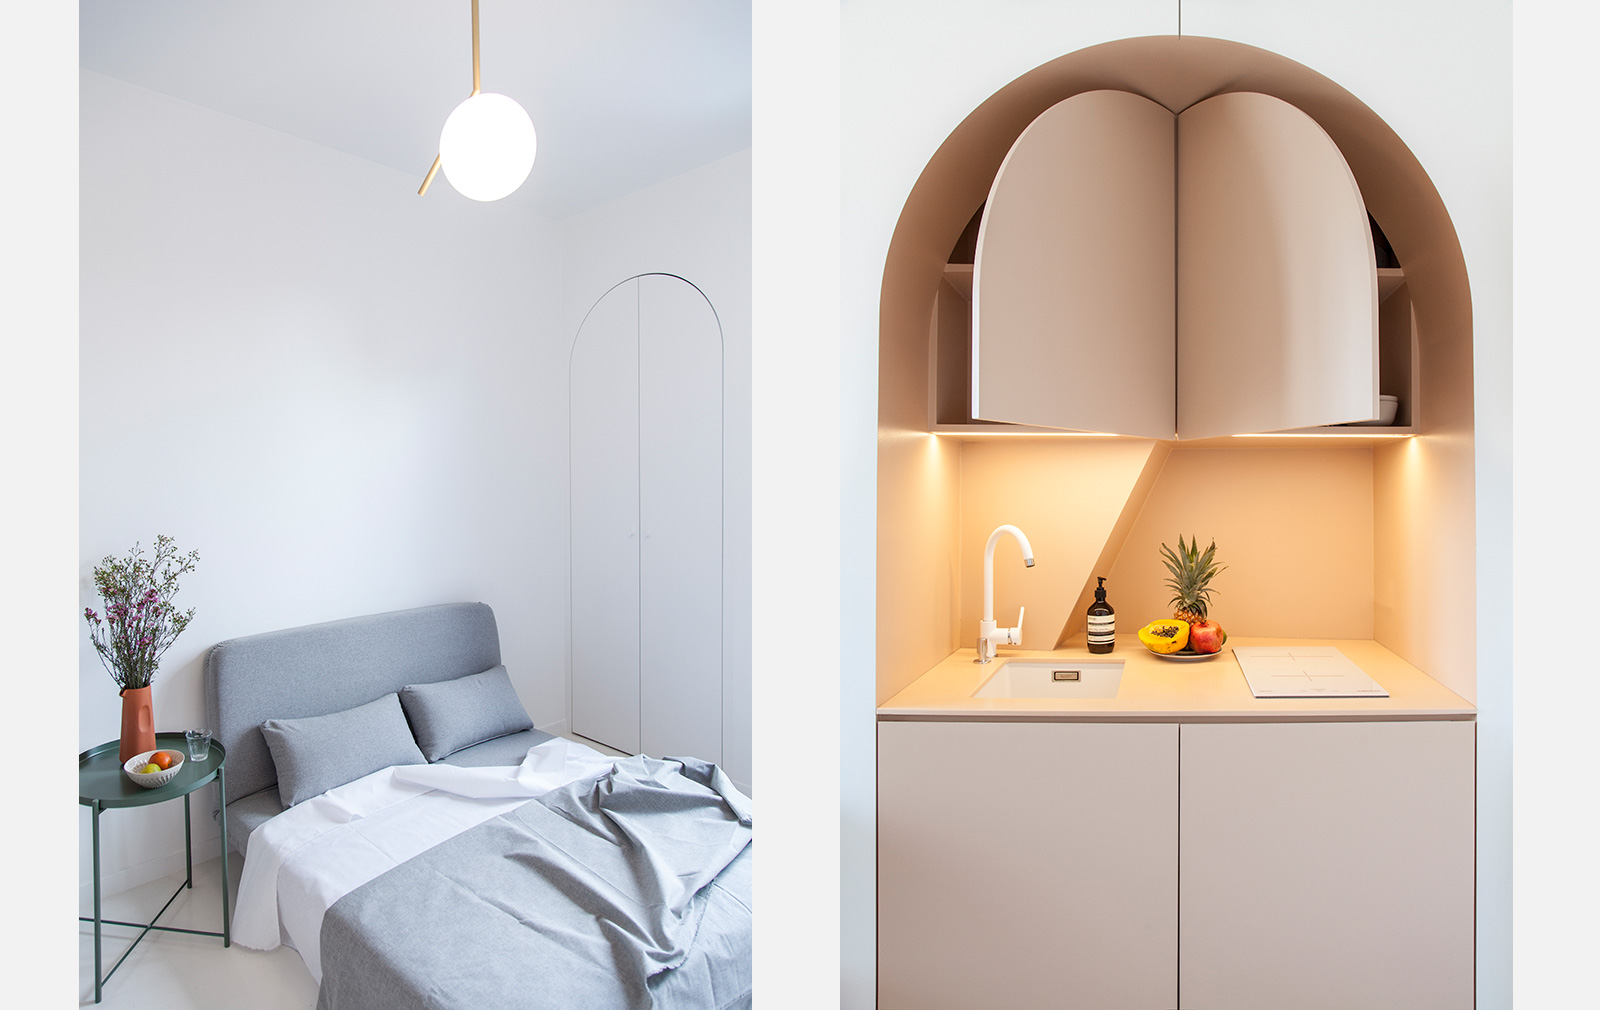 Micro home designed by Batiik